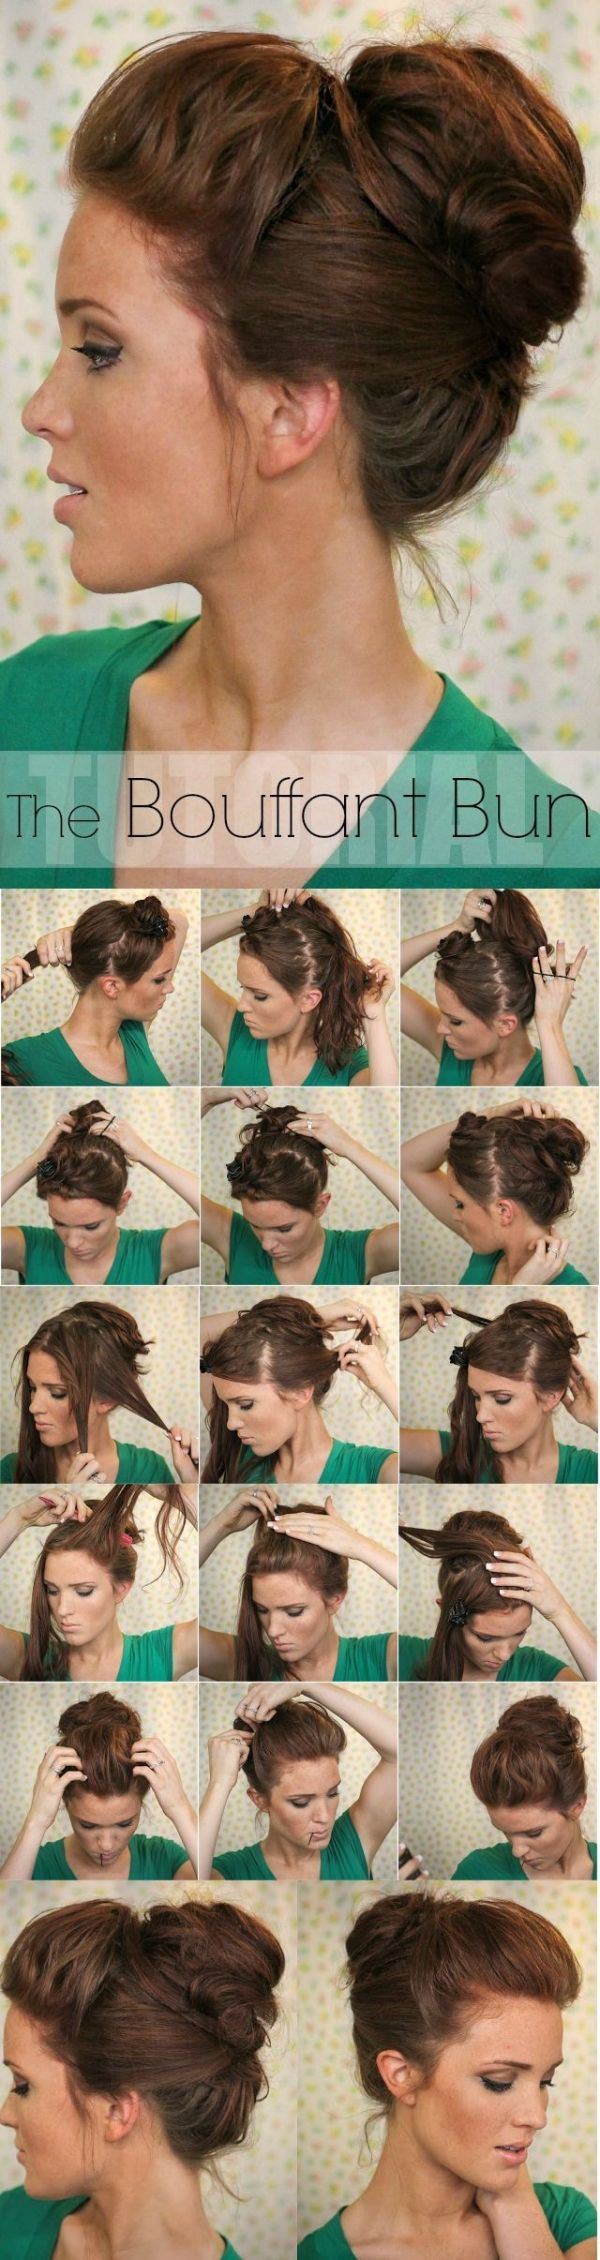 Simple braids with long hair makes for a cute, quick do.